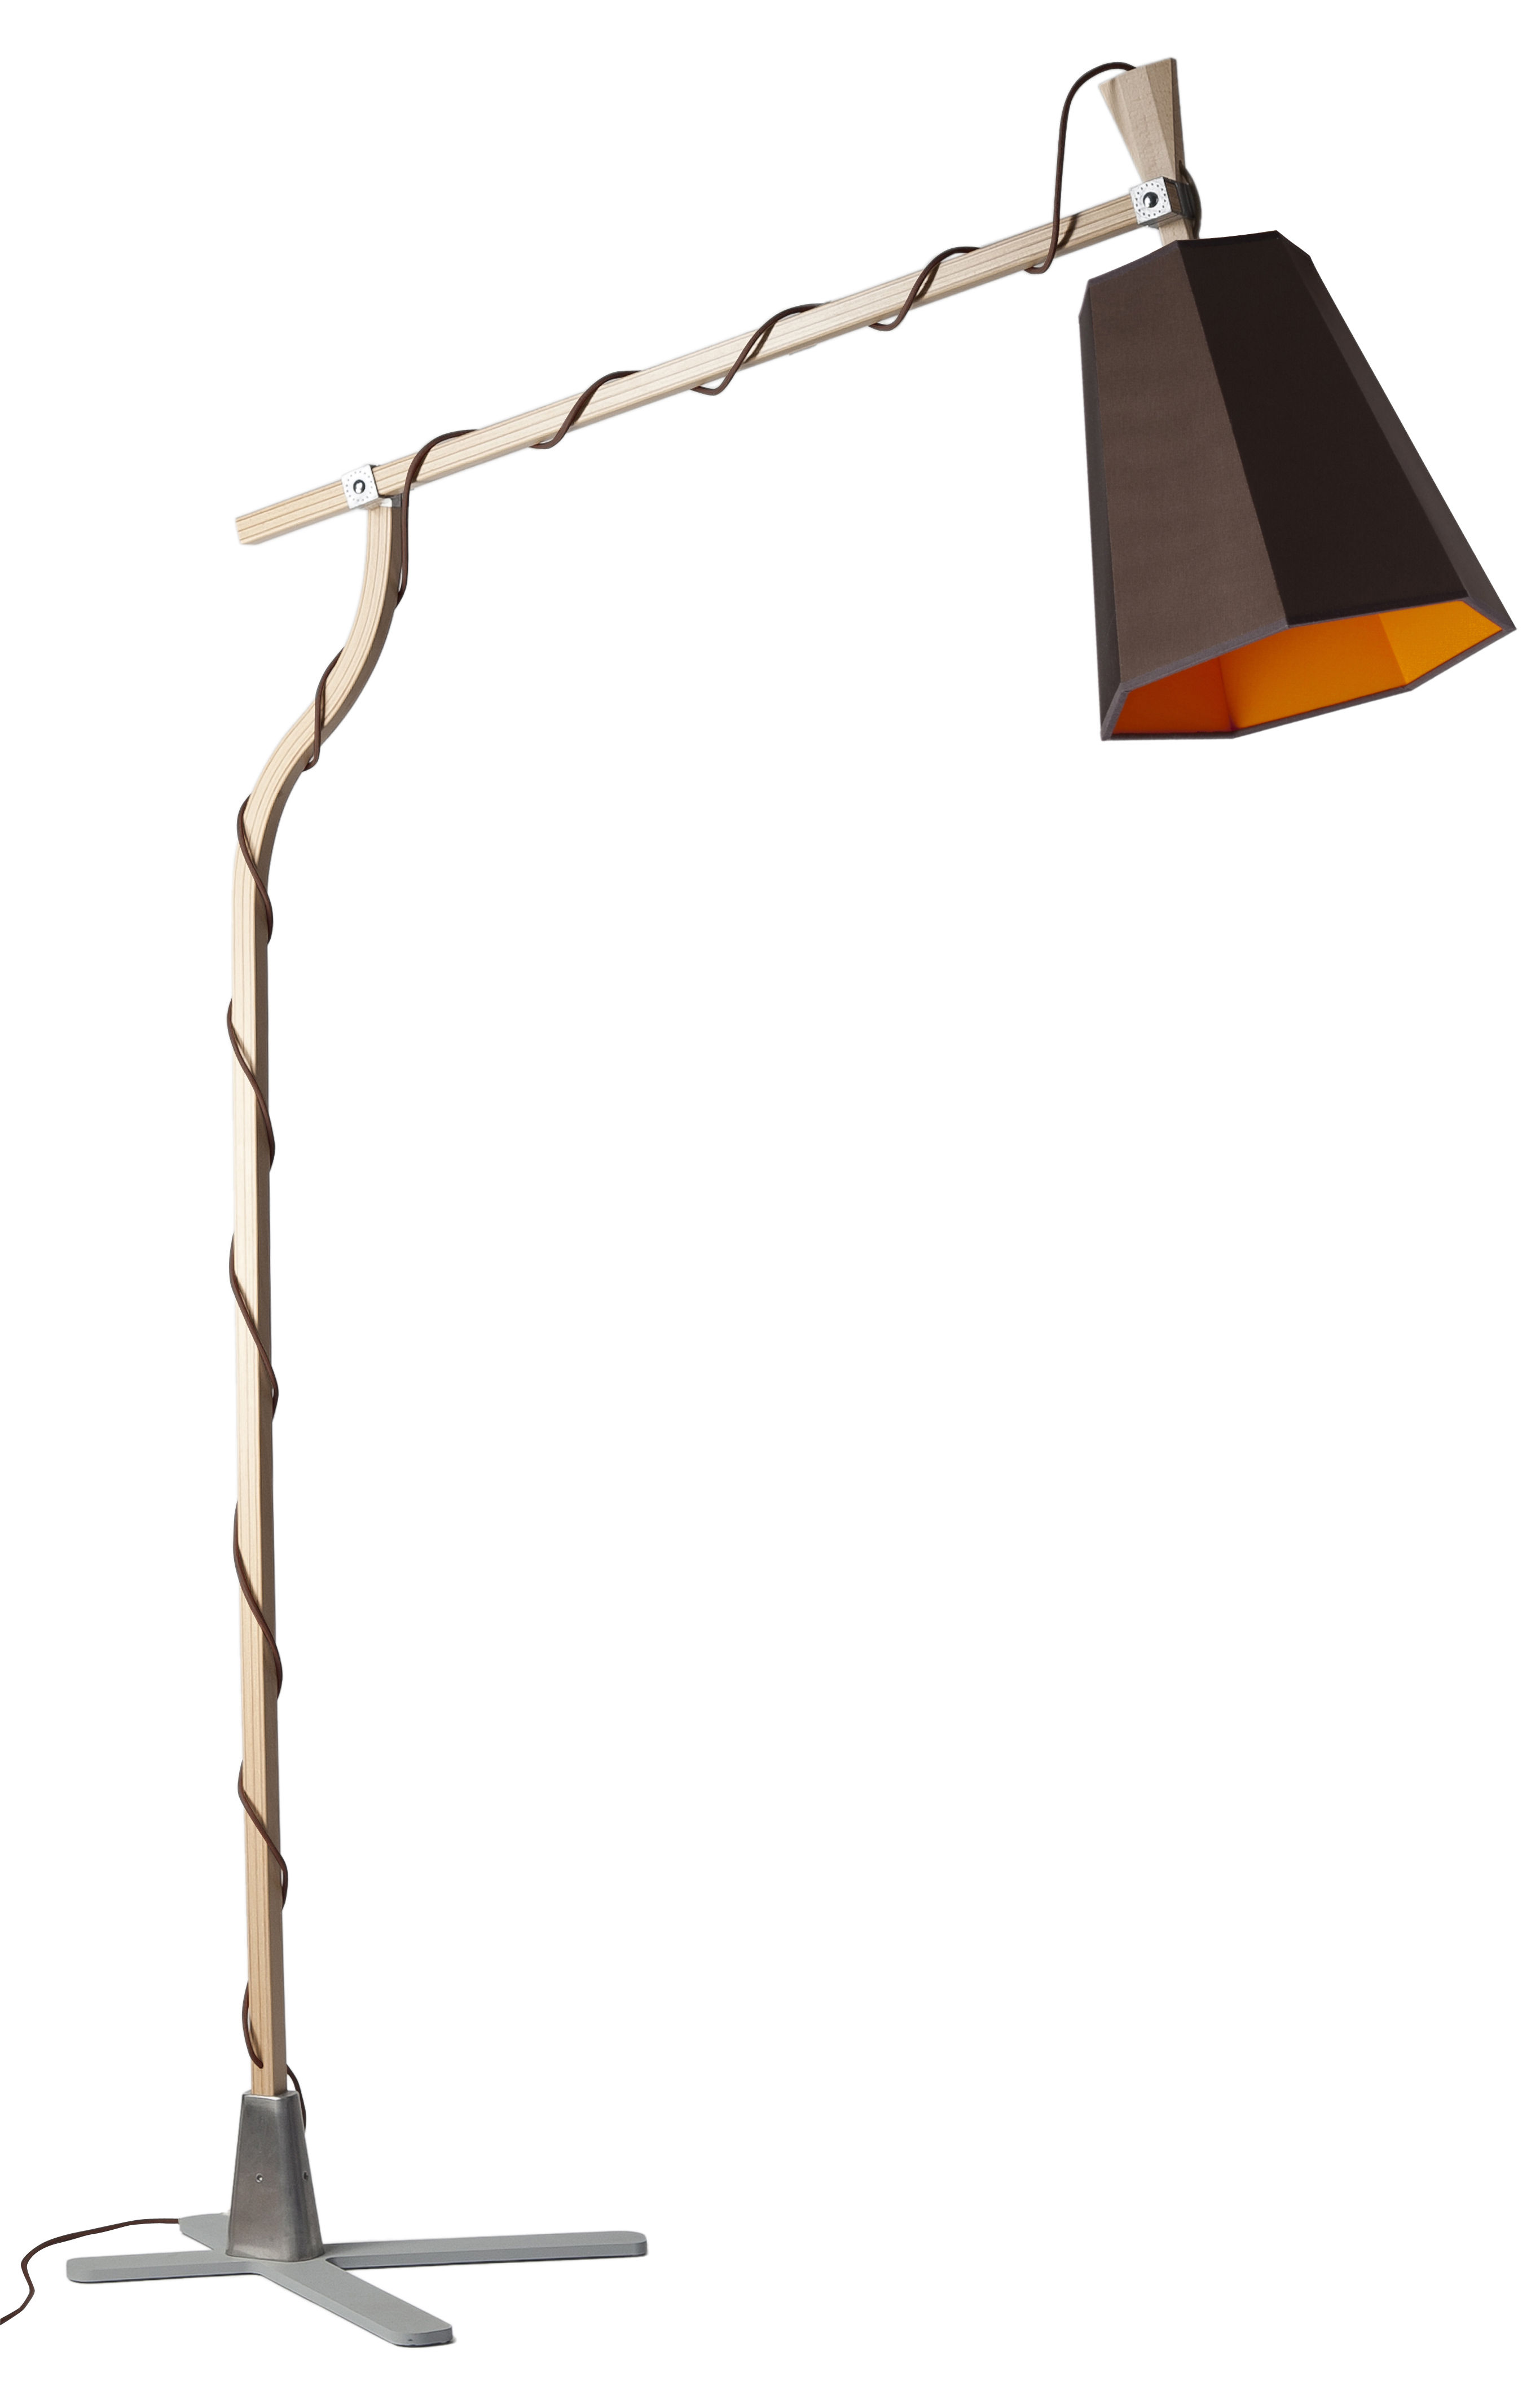 Lighting - Floor lamps - LuXiole Floor lamp - H 225 cm by Designheure - Brown shade / Orange interior / Brown thread - Beechwood, Cotton, Lacquered steel